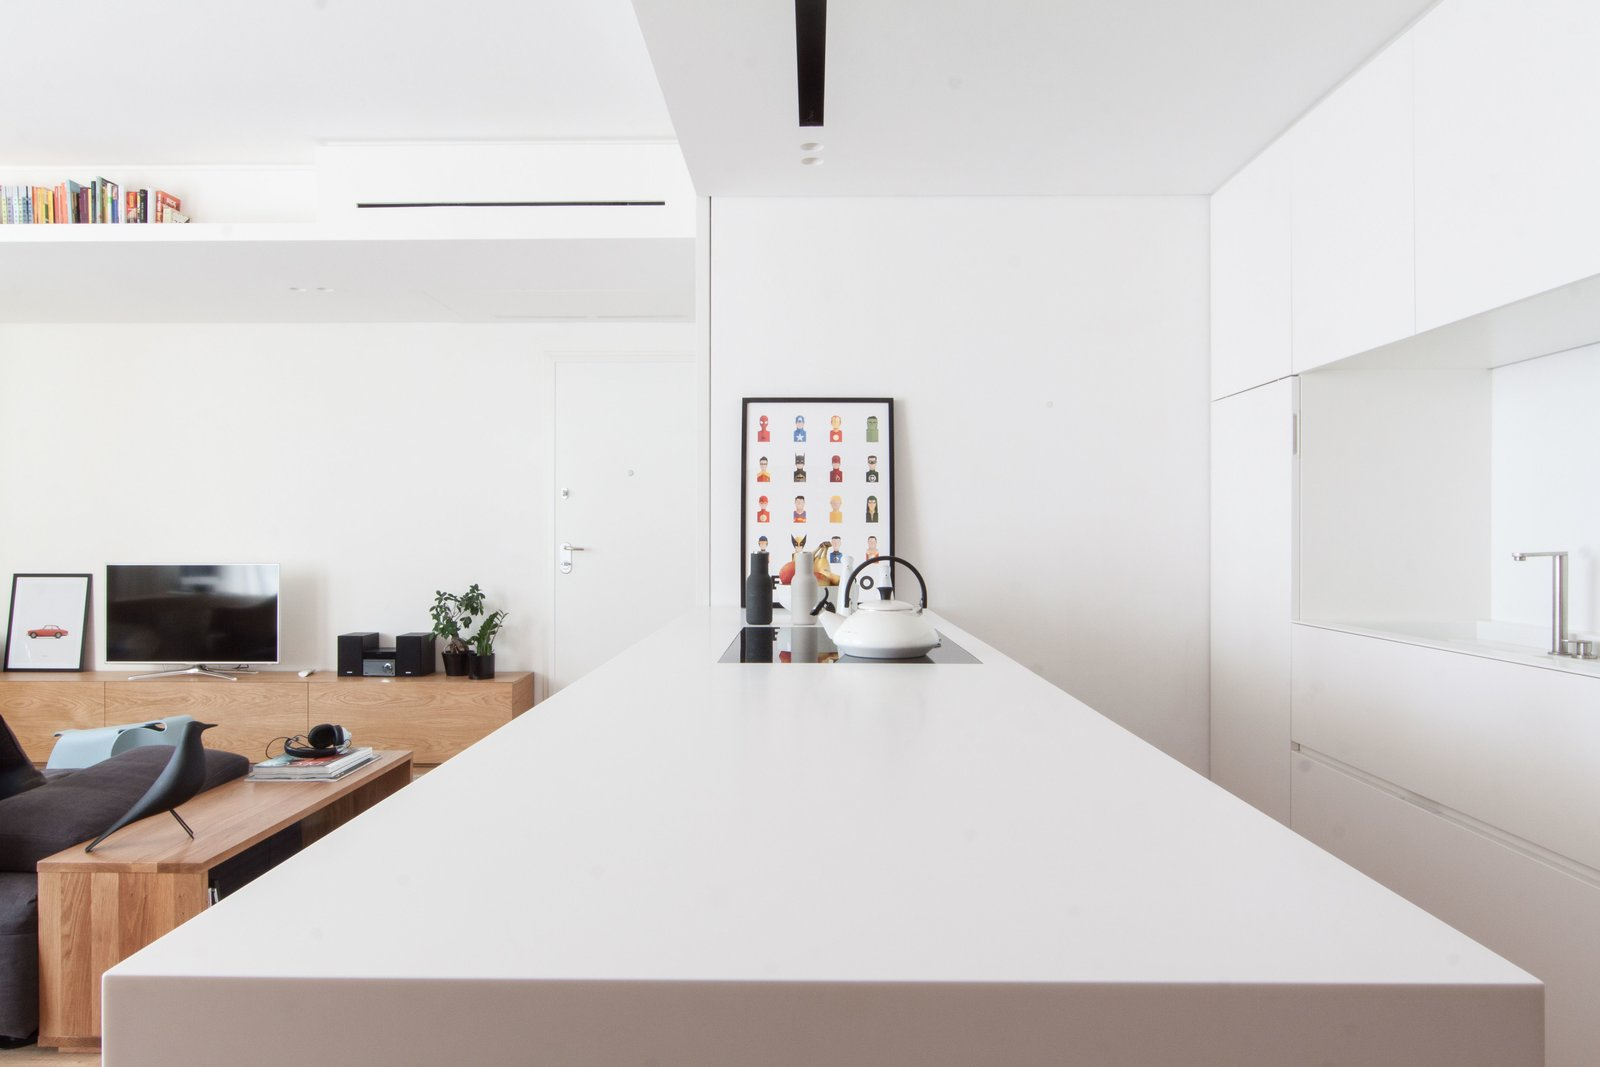 Tagged: Kitchen, Medium Hardwood Floor, Ceiling Lighting, White Cabinet, Refrigerator, Wall Oven, Cooktops, Microwave, Dishwasher, and Undermount Sink.  Interior LP by Didonè Comacchio